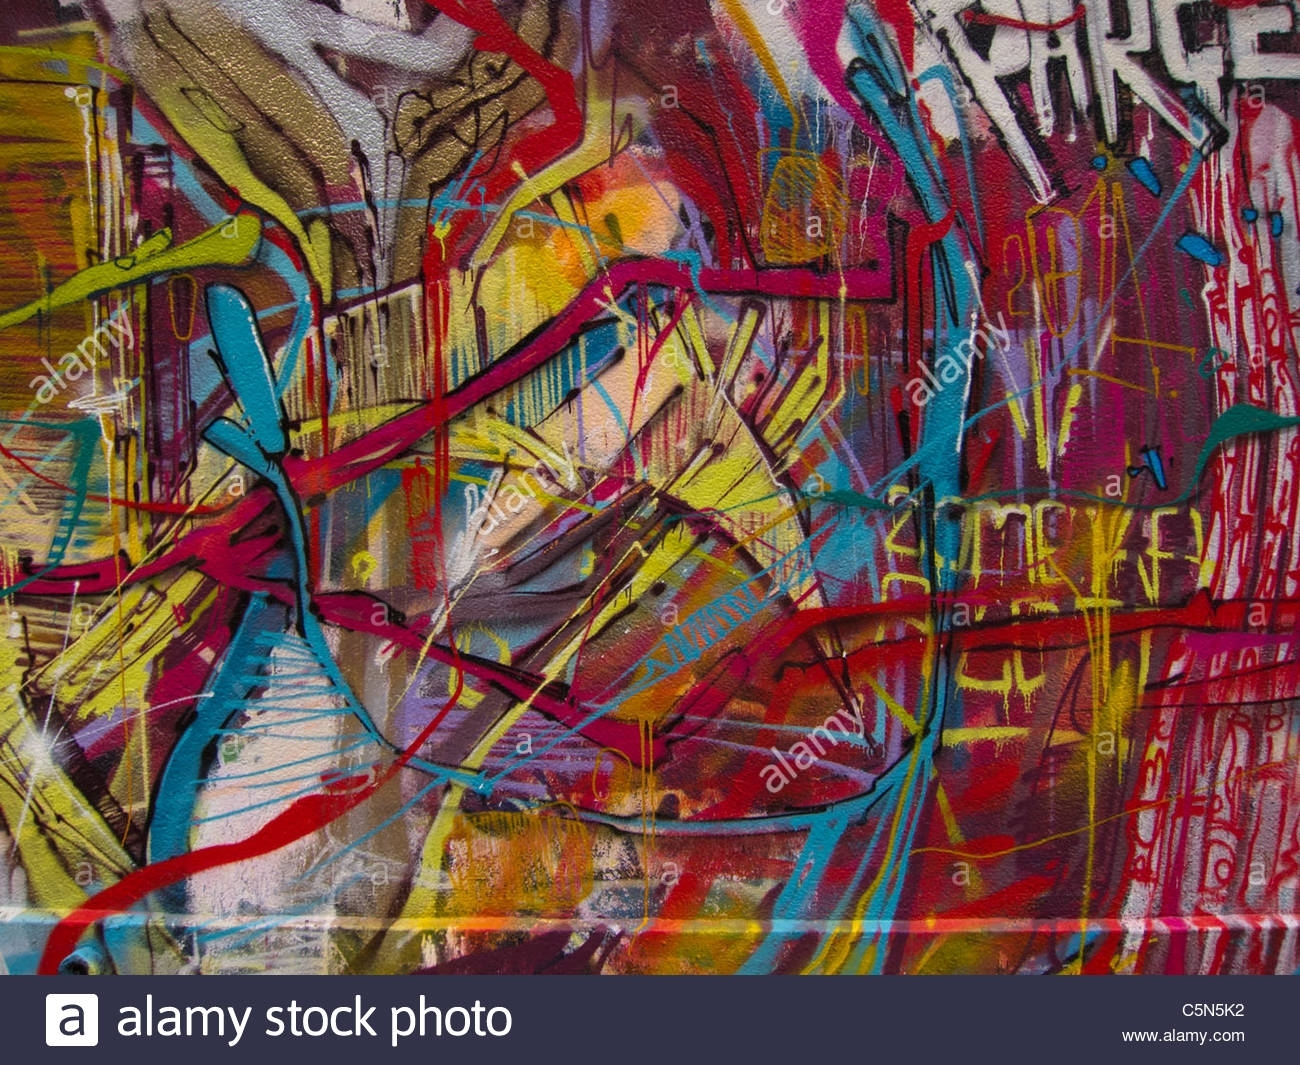 Paris, France, Wall Paintings, Graffiti, Street Art, Abstract Intended For 2017 Abstract Graffiti Wall Art (View 17 of 20)